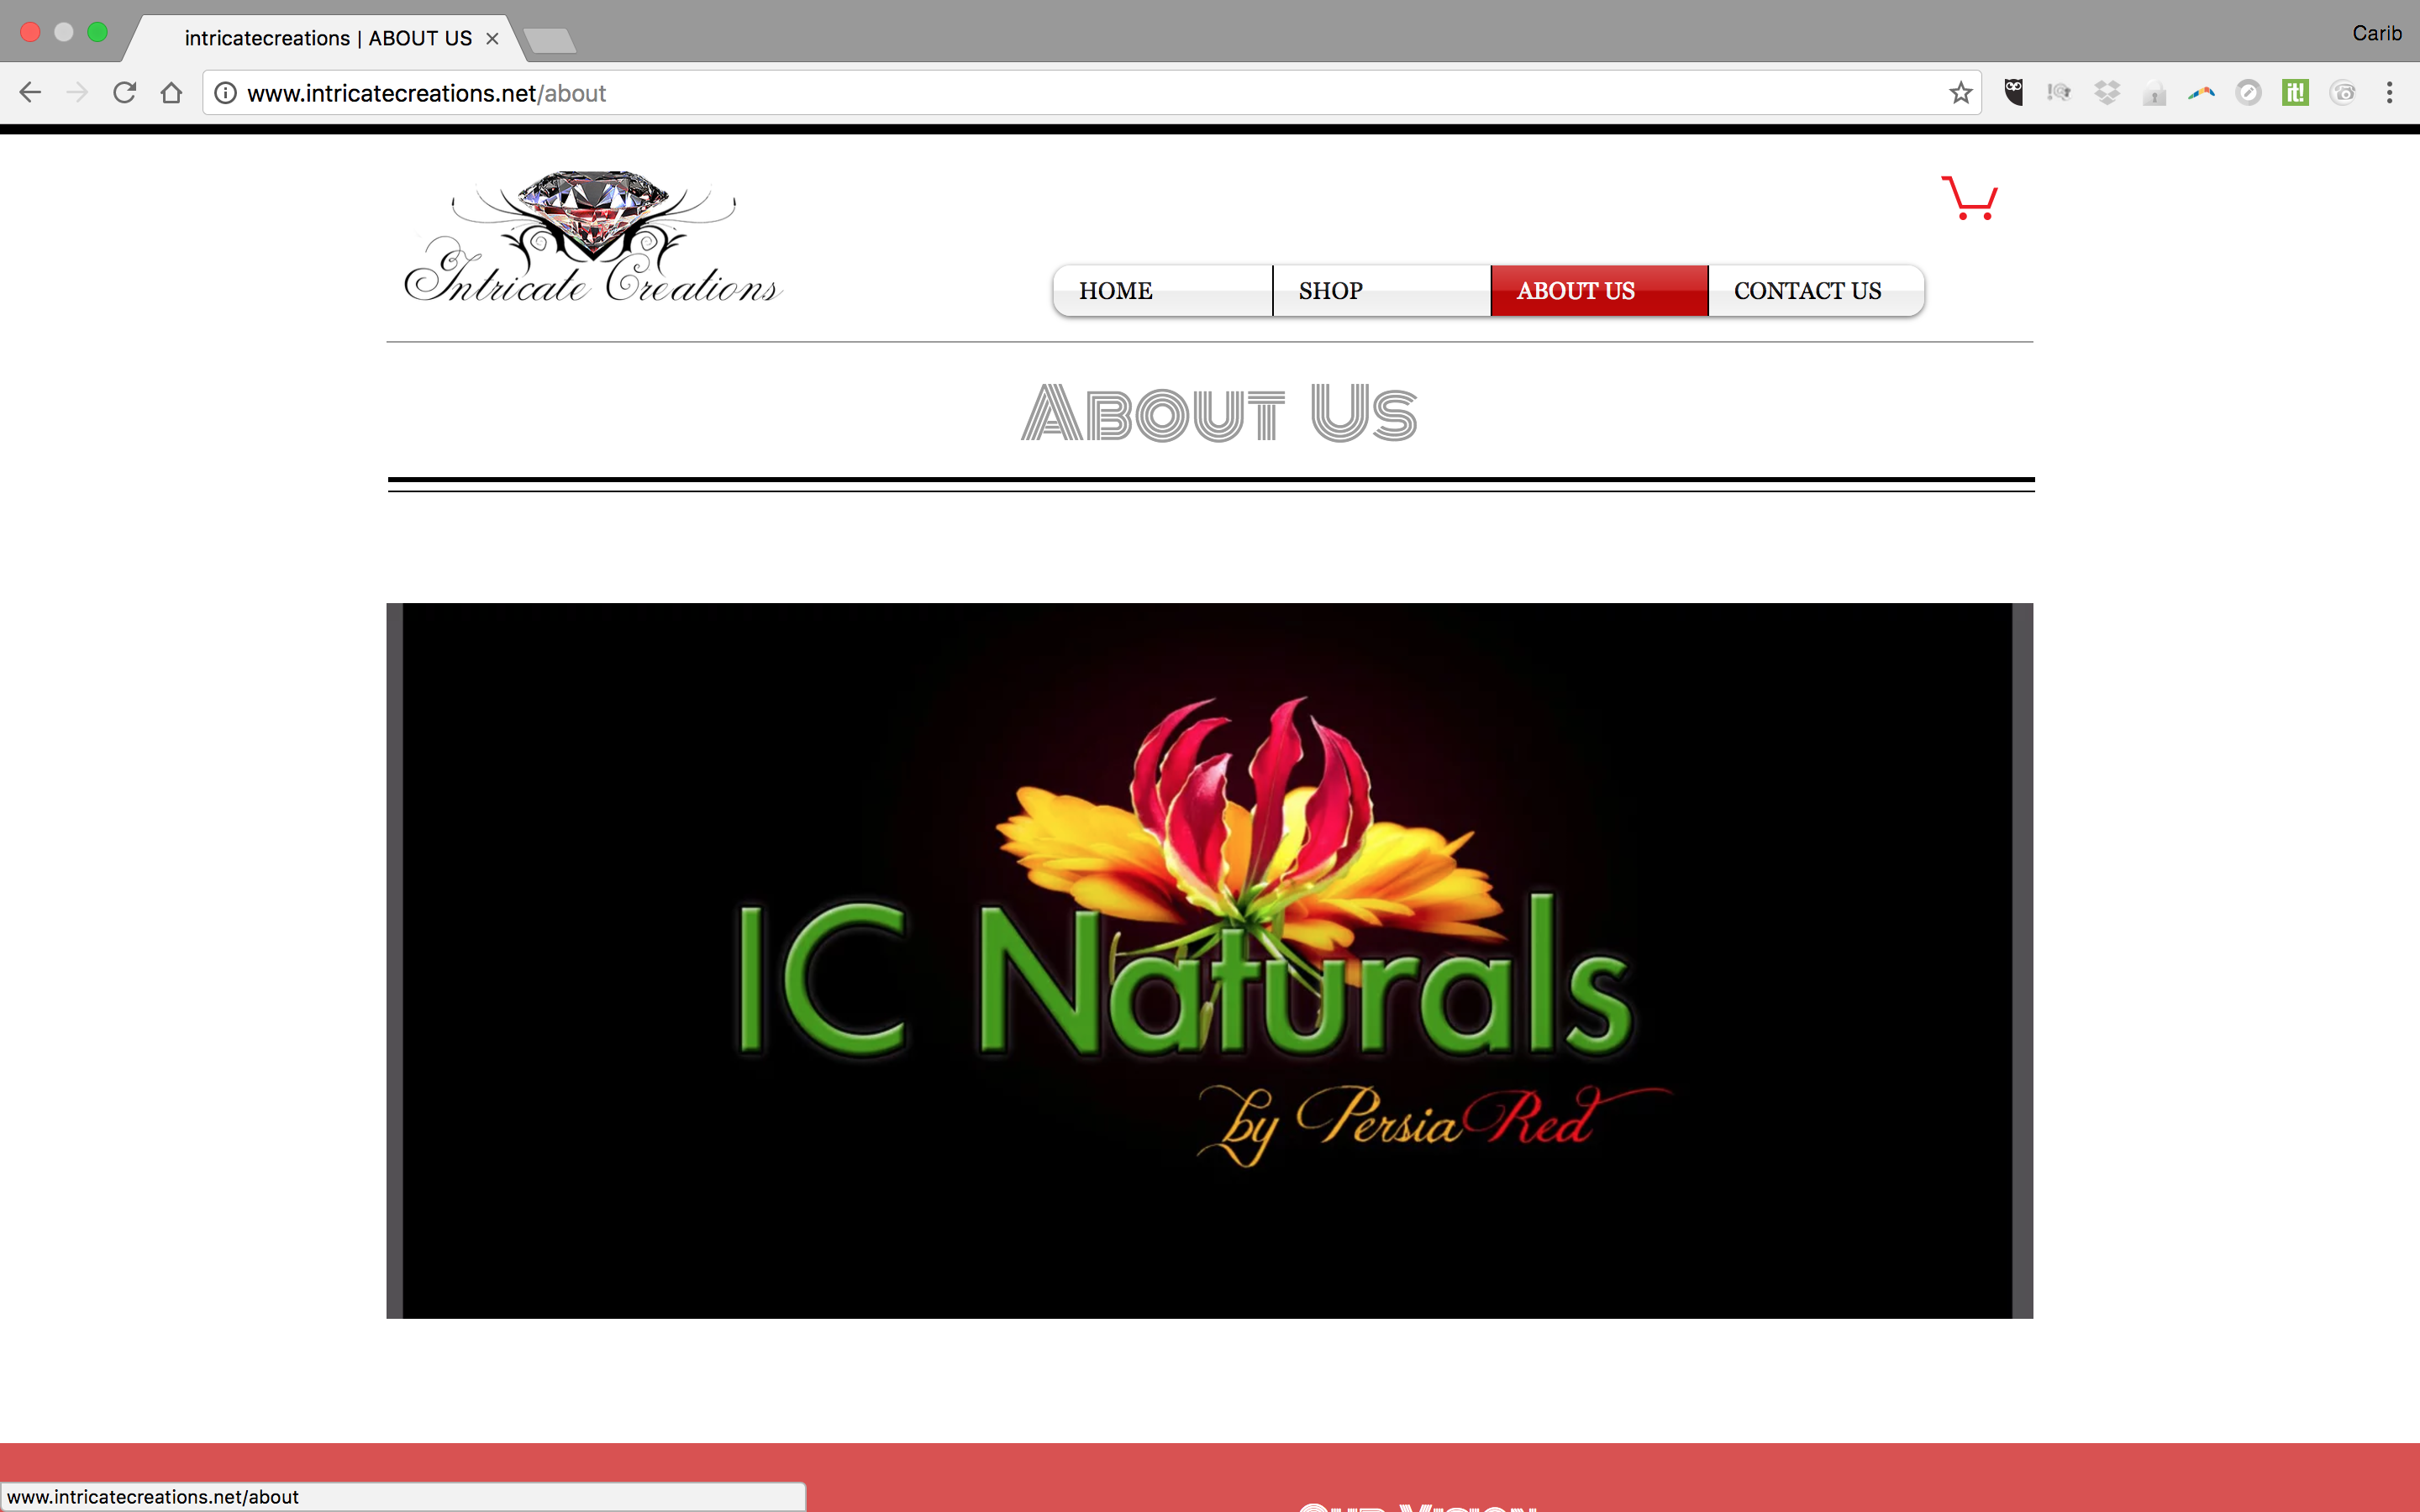 IC Naturals by Persia Red